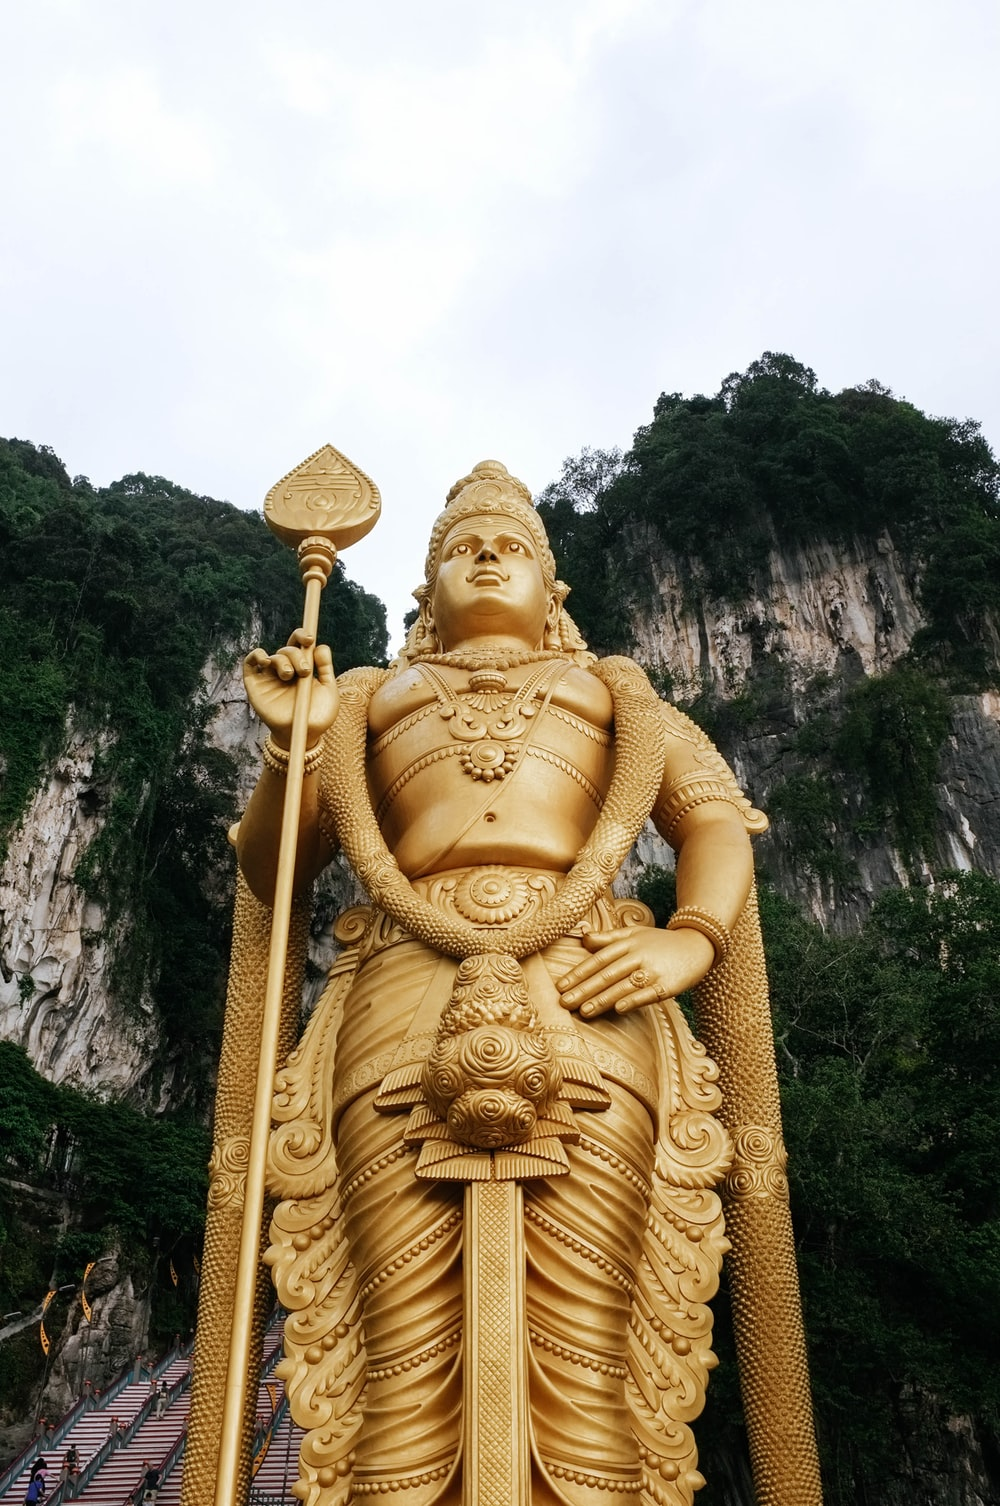 low angle photograph of Buddha statue near mountain cliff under cloudy sky